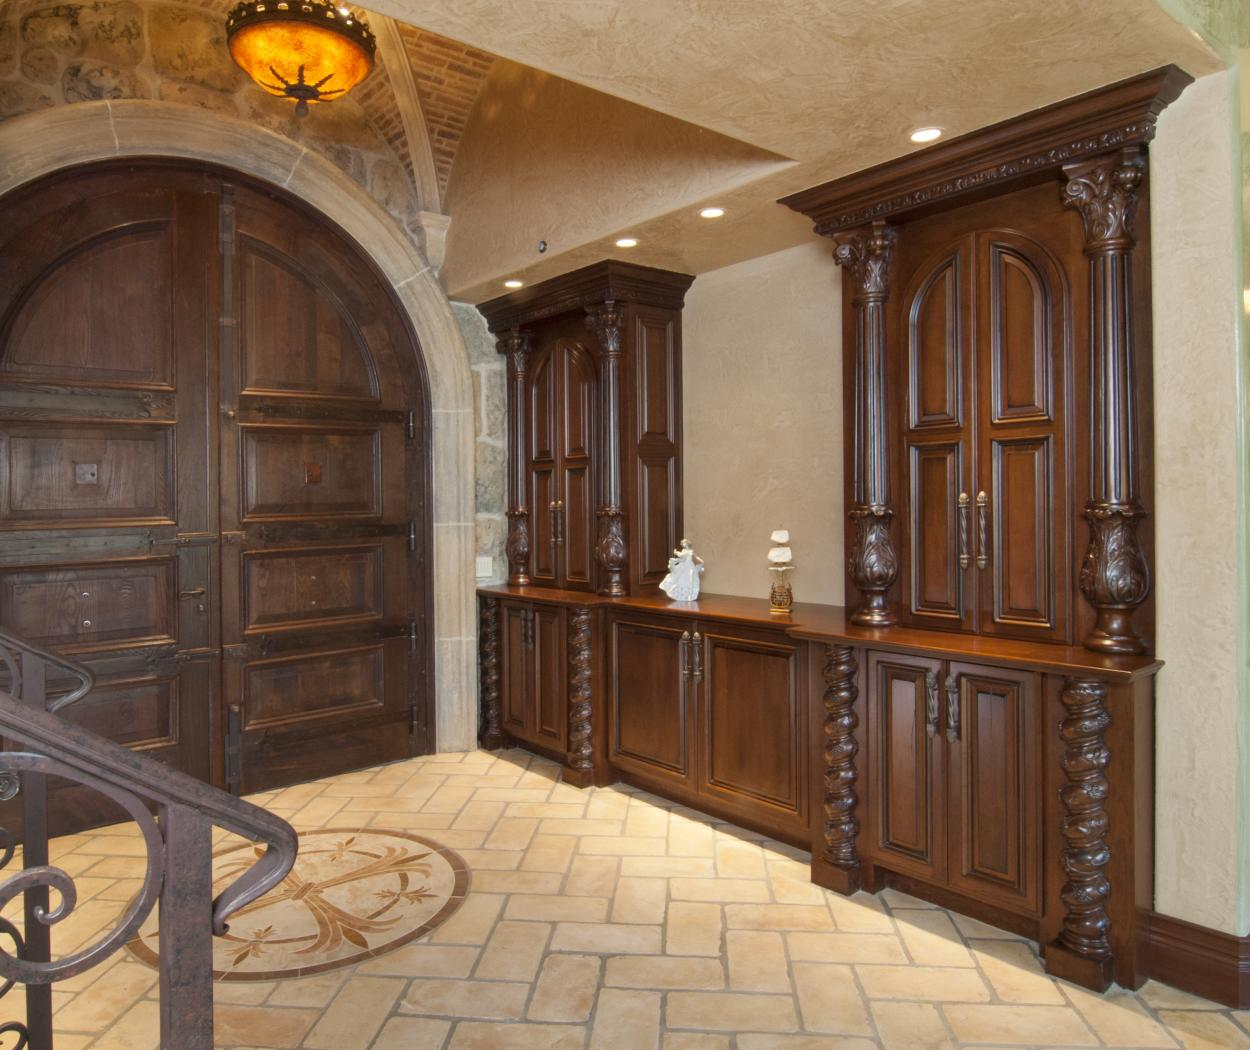 Traditional Entry Built in with Ornate Decorative Posts and a Wood Counter Top